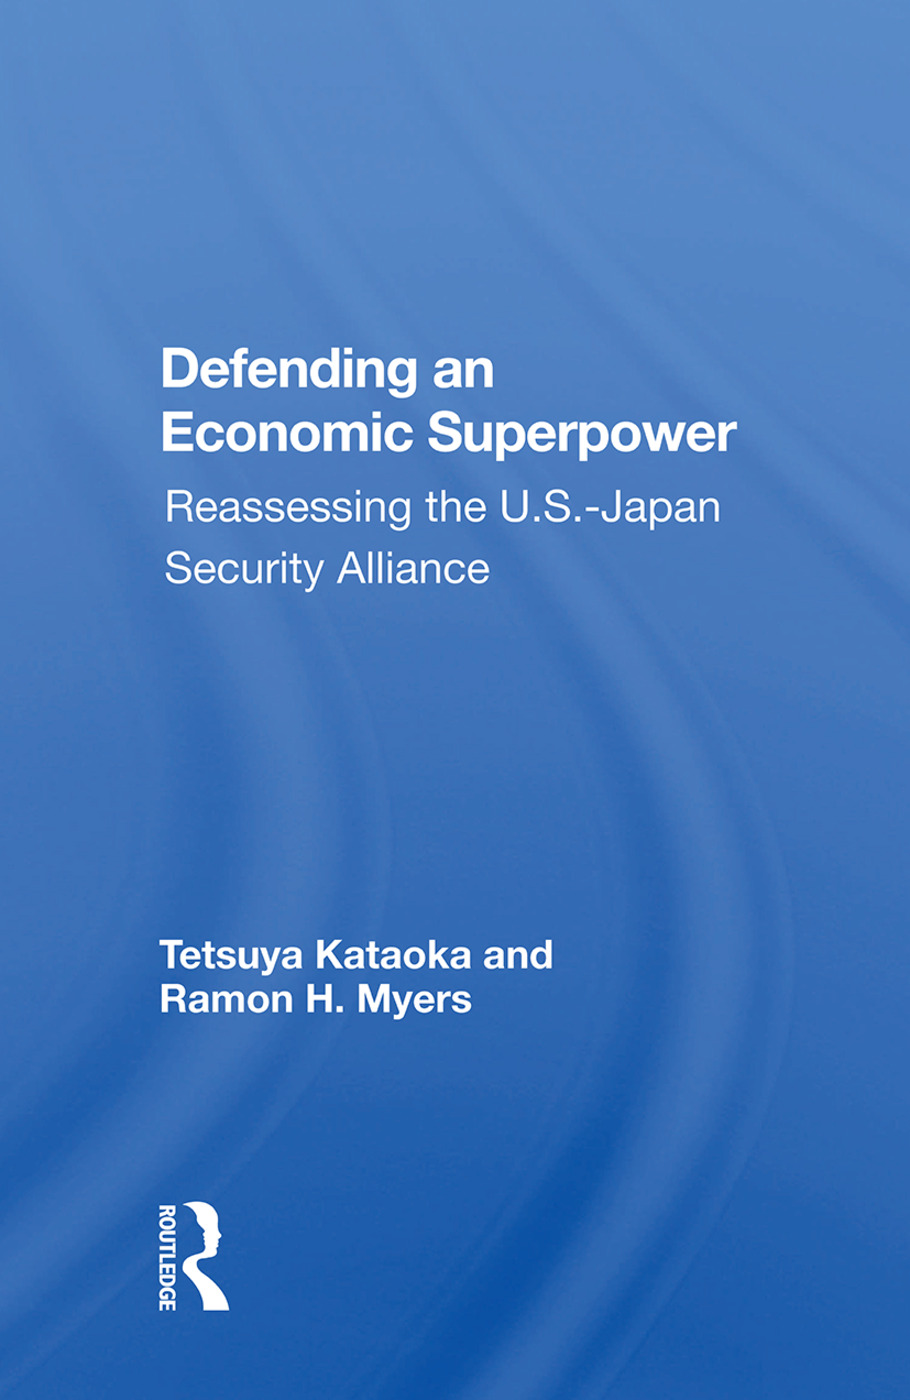 Defending an Economic Superpower